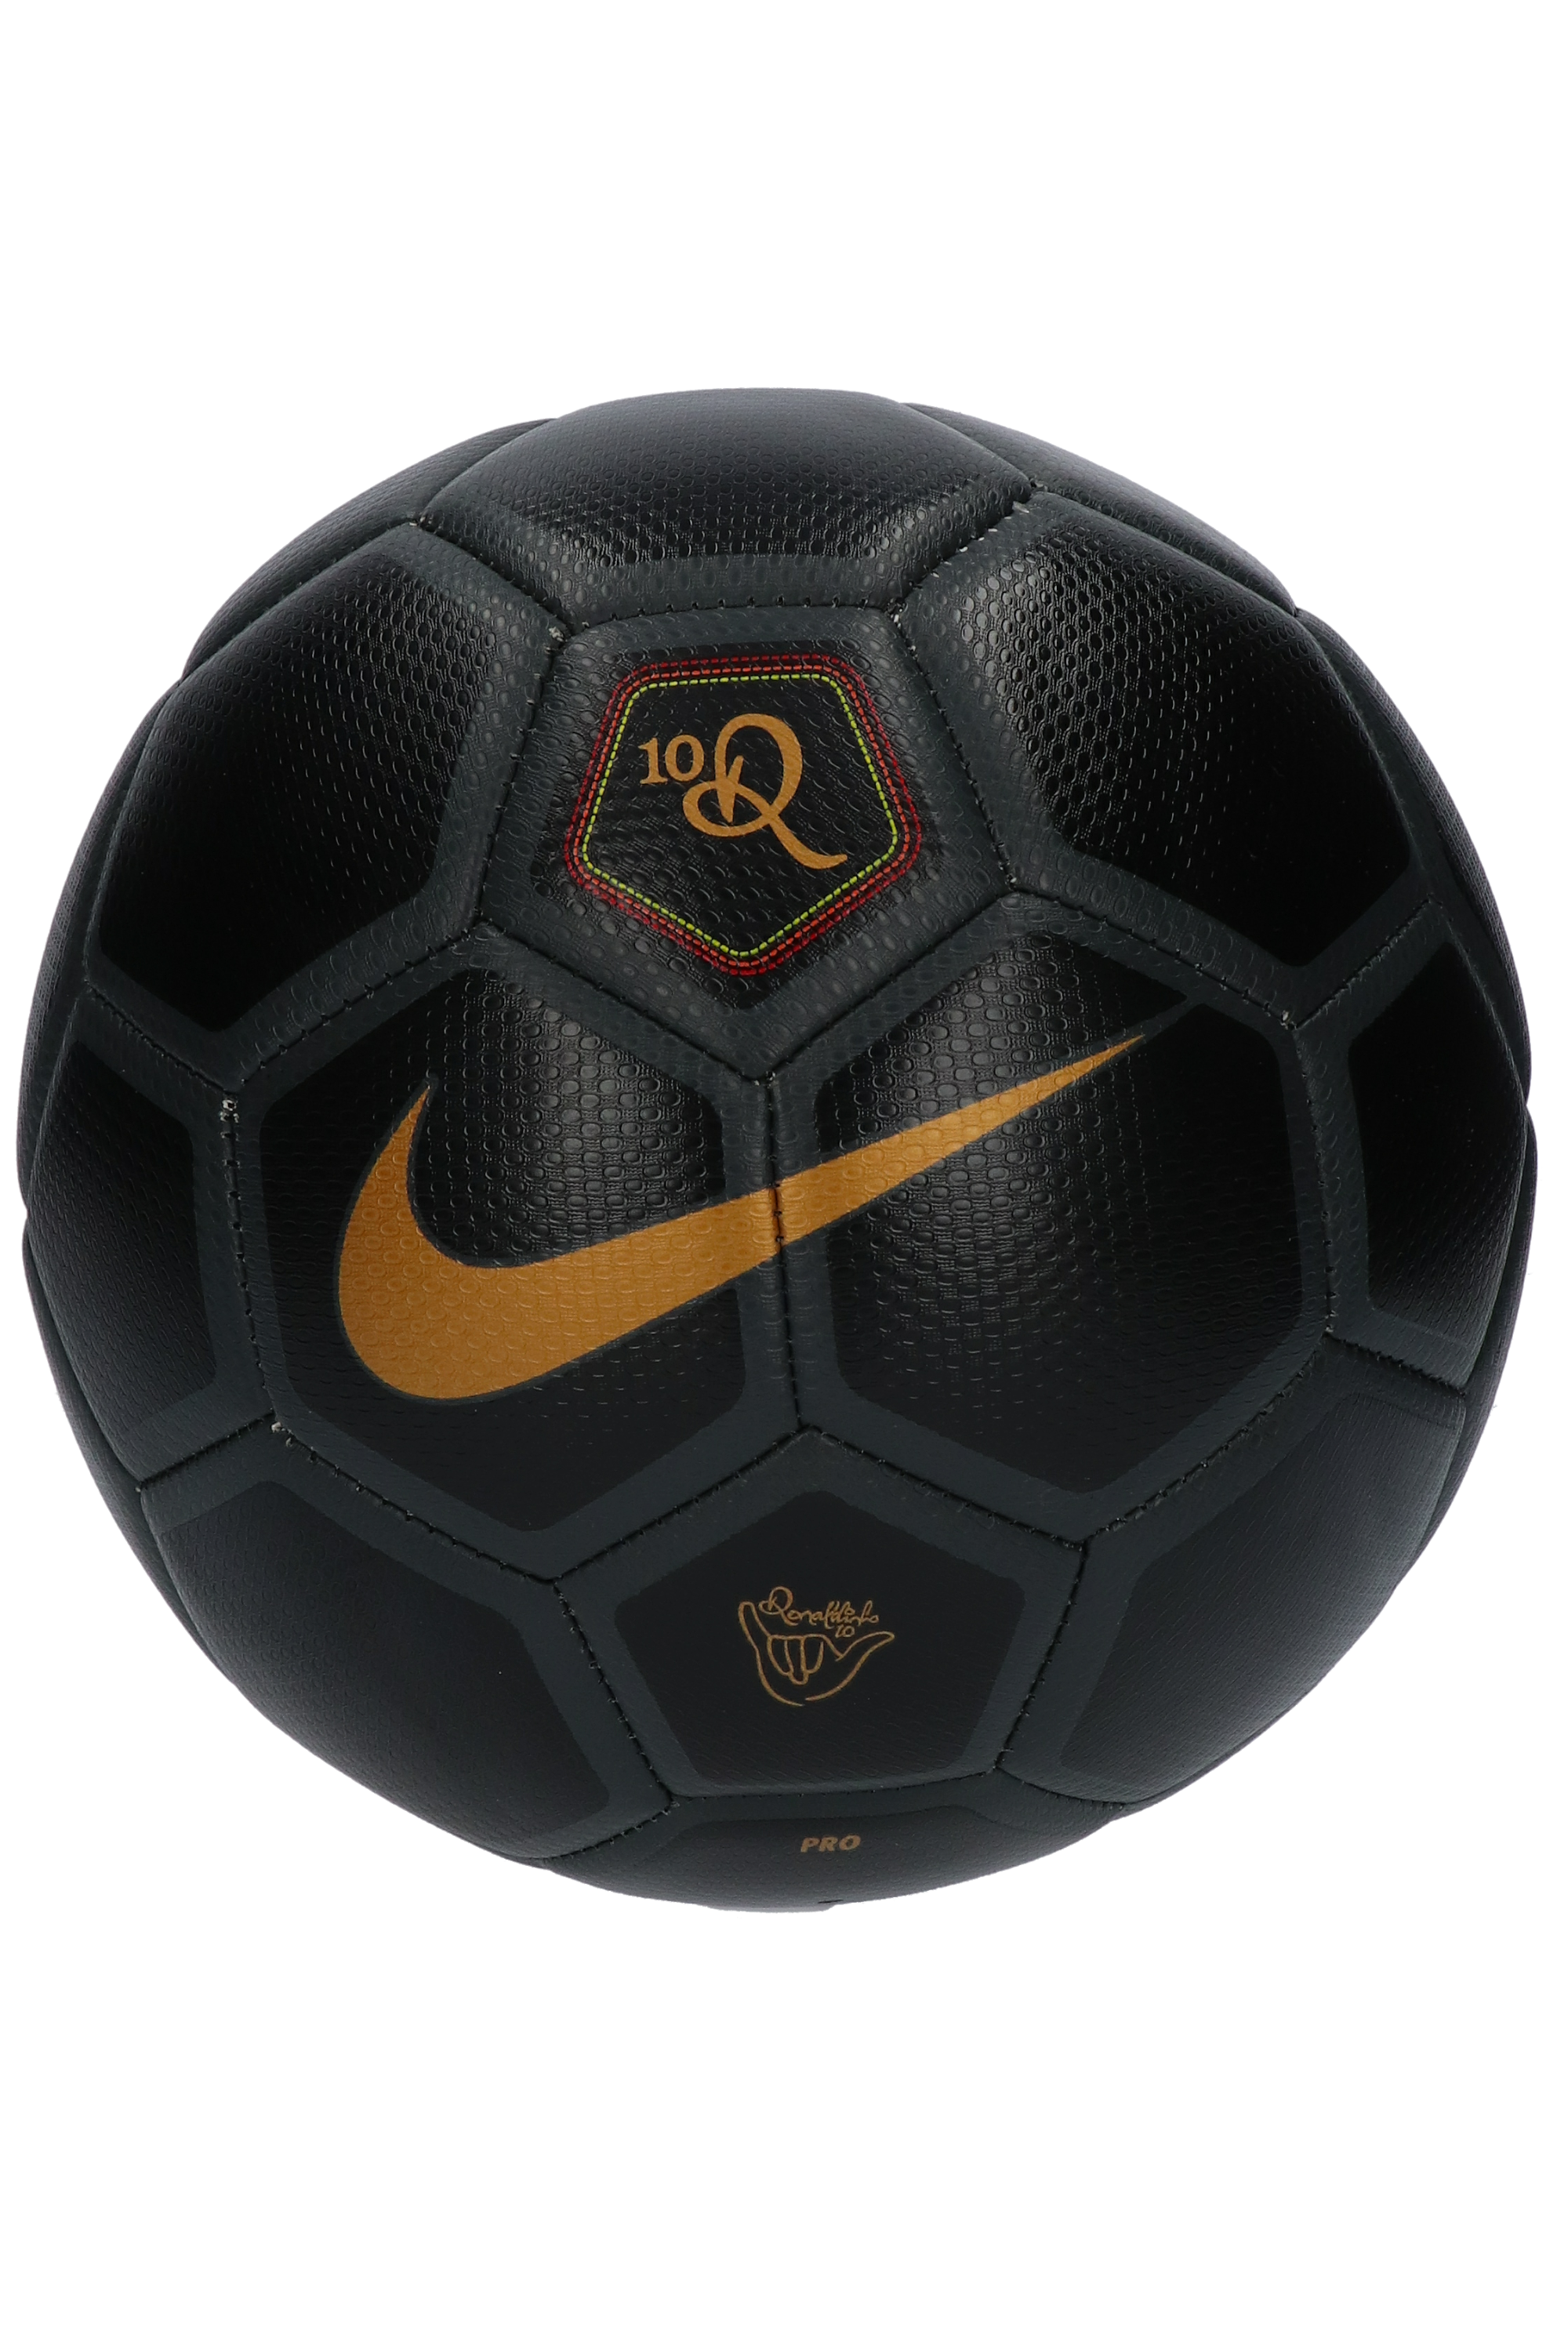 angustia Mente acuerdo  Football Nike Menor X 10R Indoor | R-GOL.com - Football boots & equipment